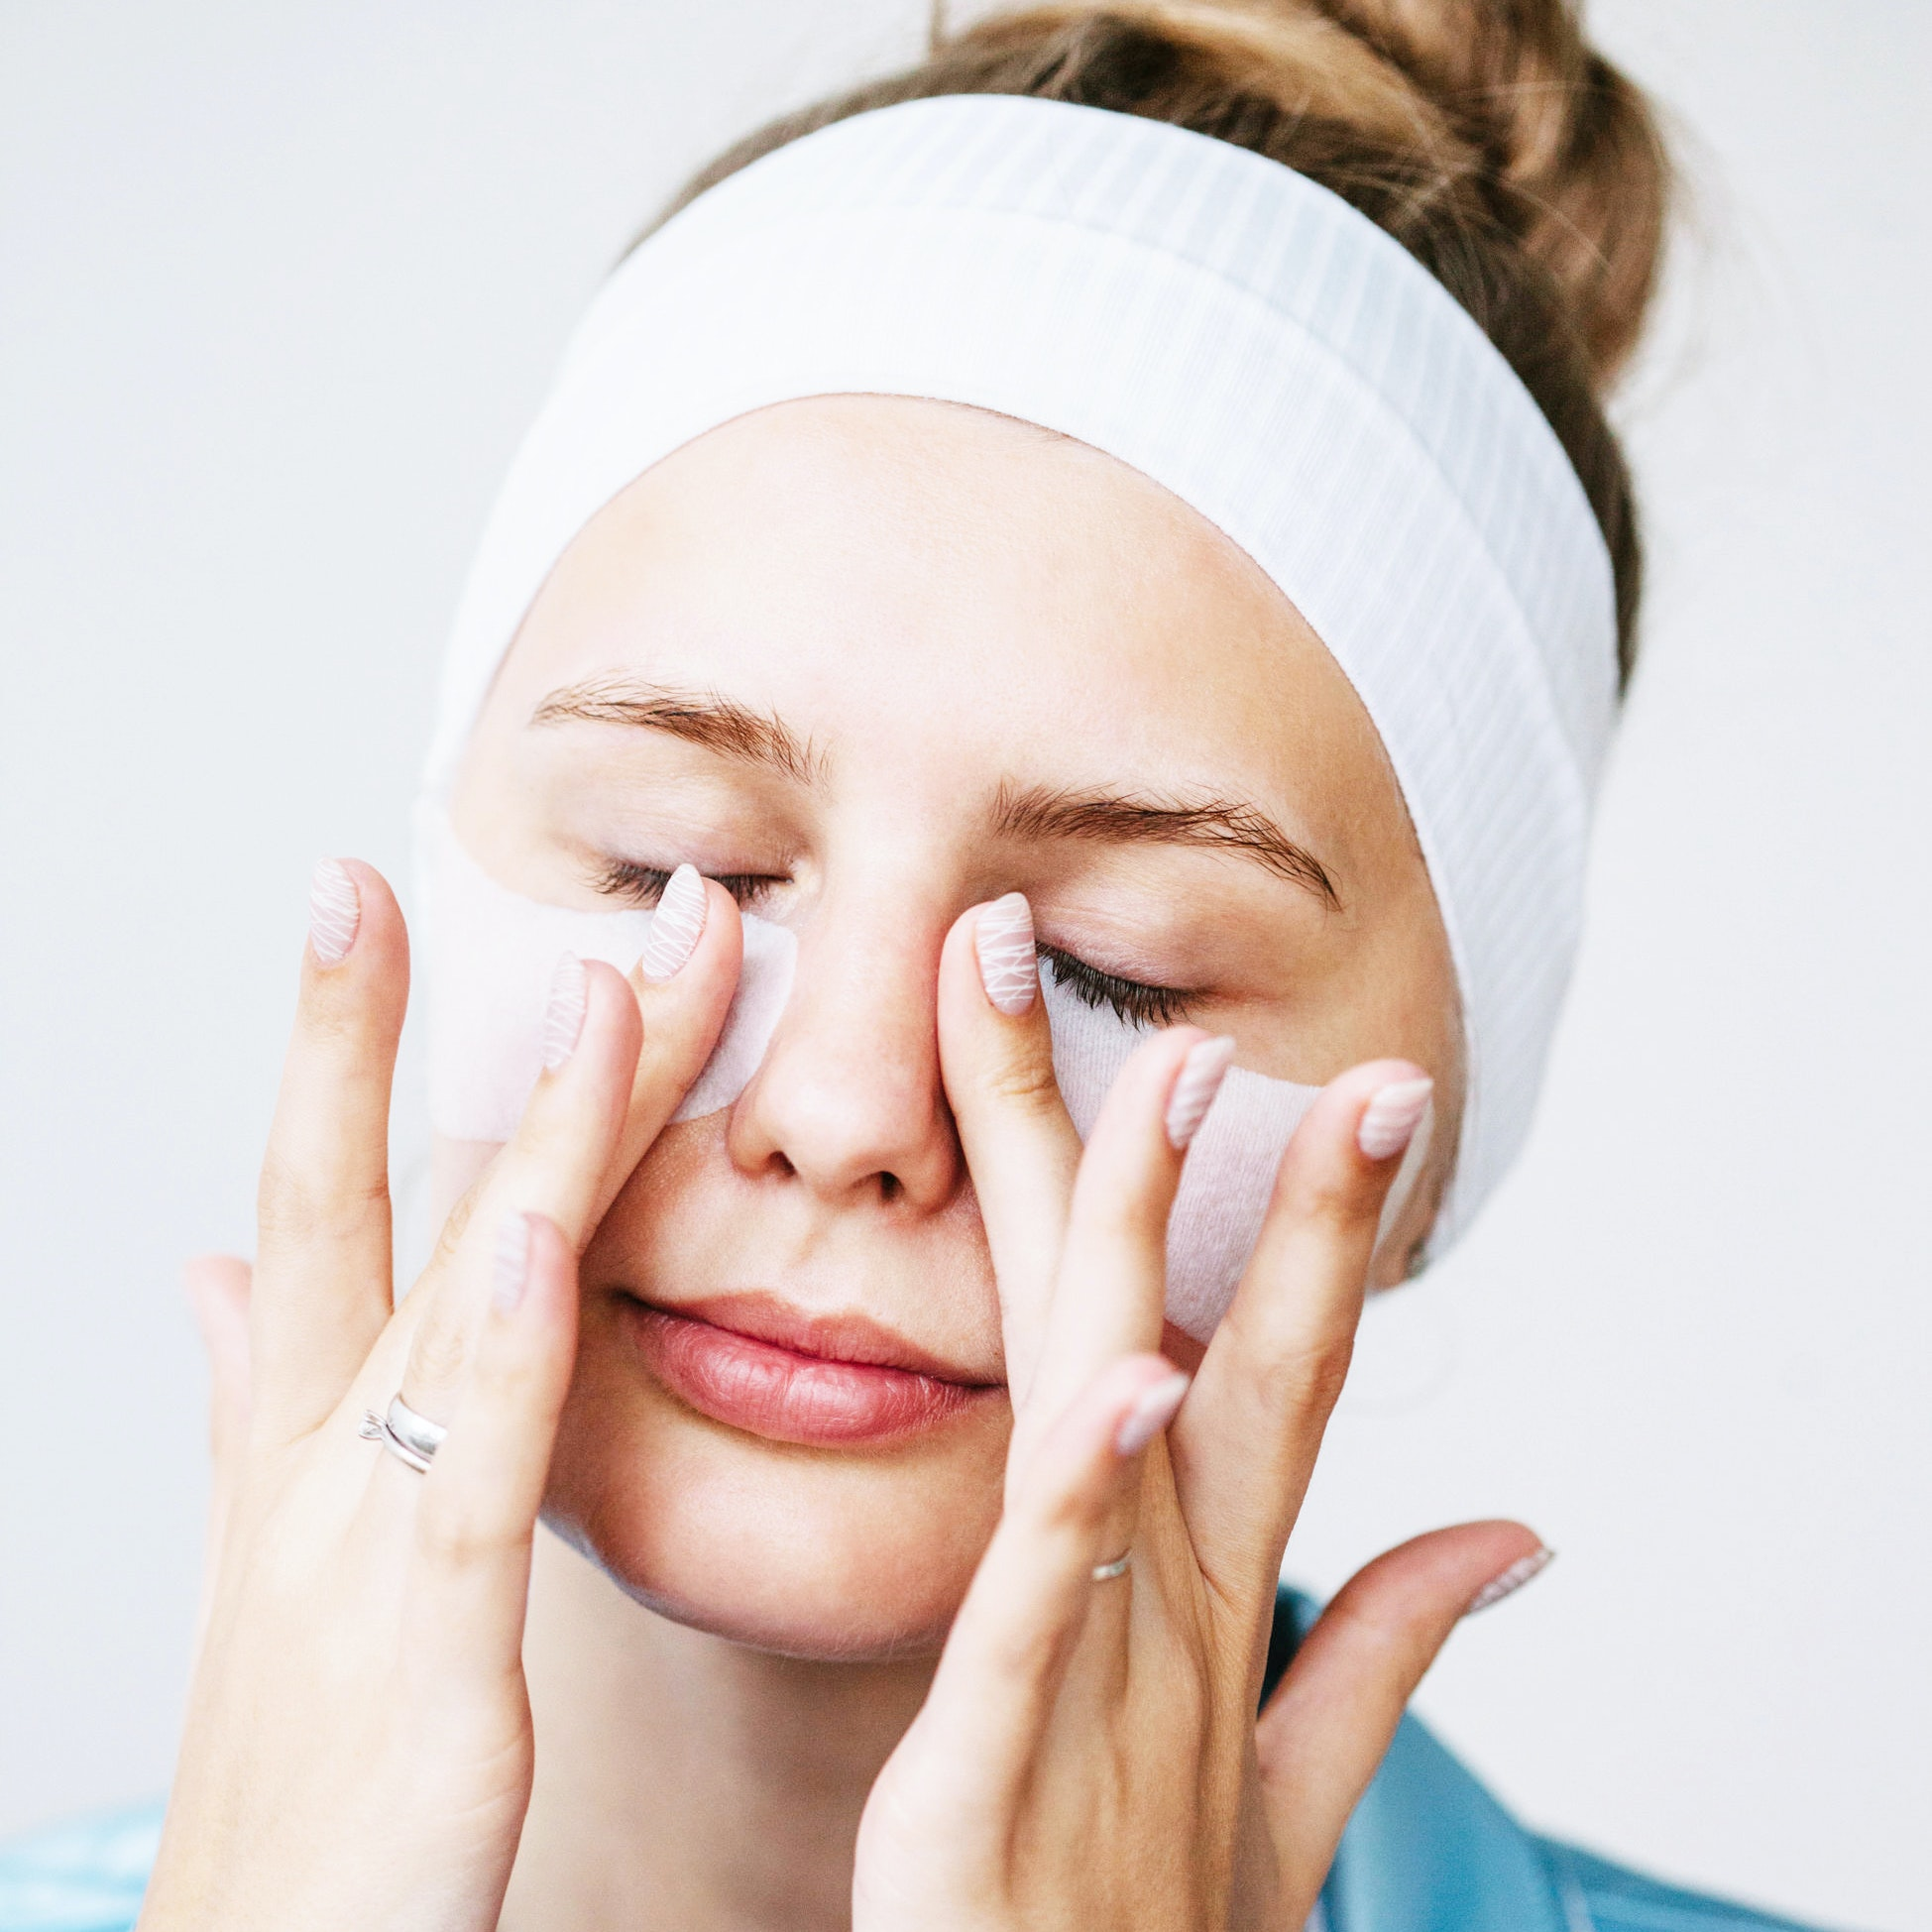 Ask a Plastic Surgeon: How Do I Get Rid of My Undereye Circles?